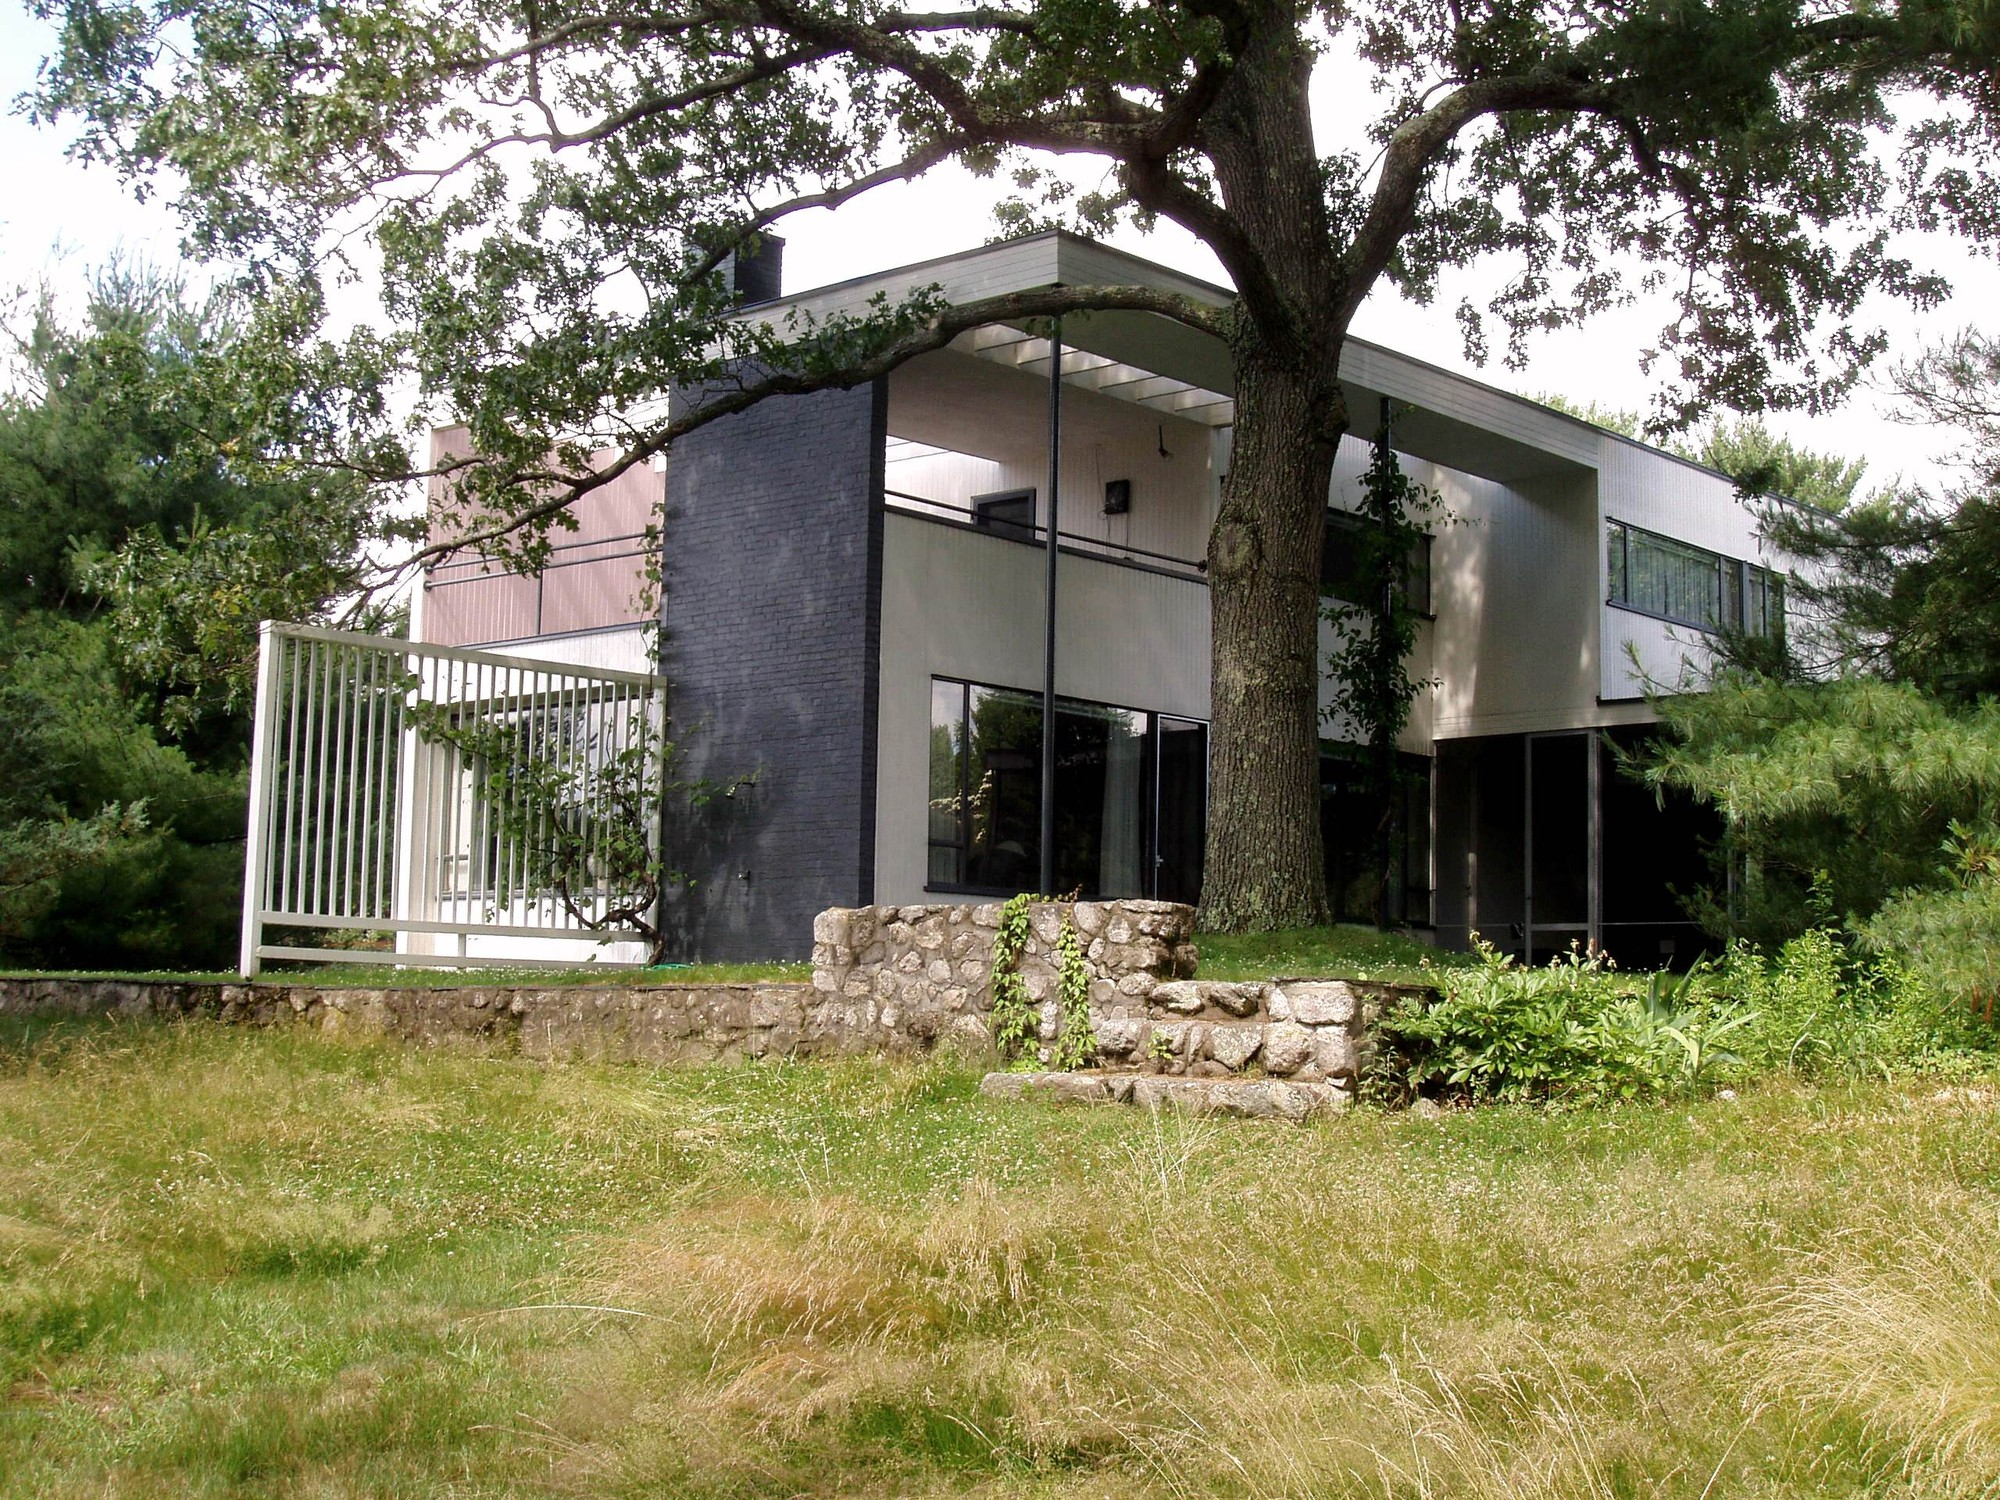 Gallery of ad classics gropius house walter gropius 7 for Ad house